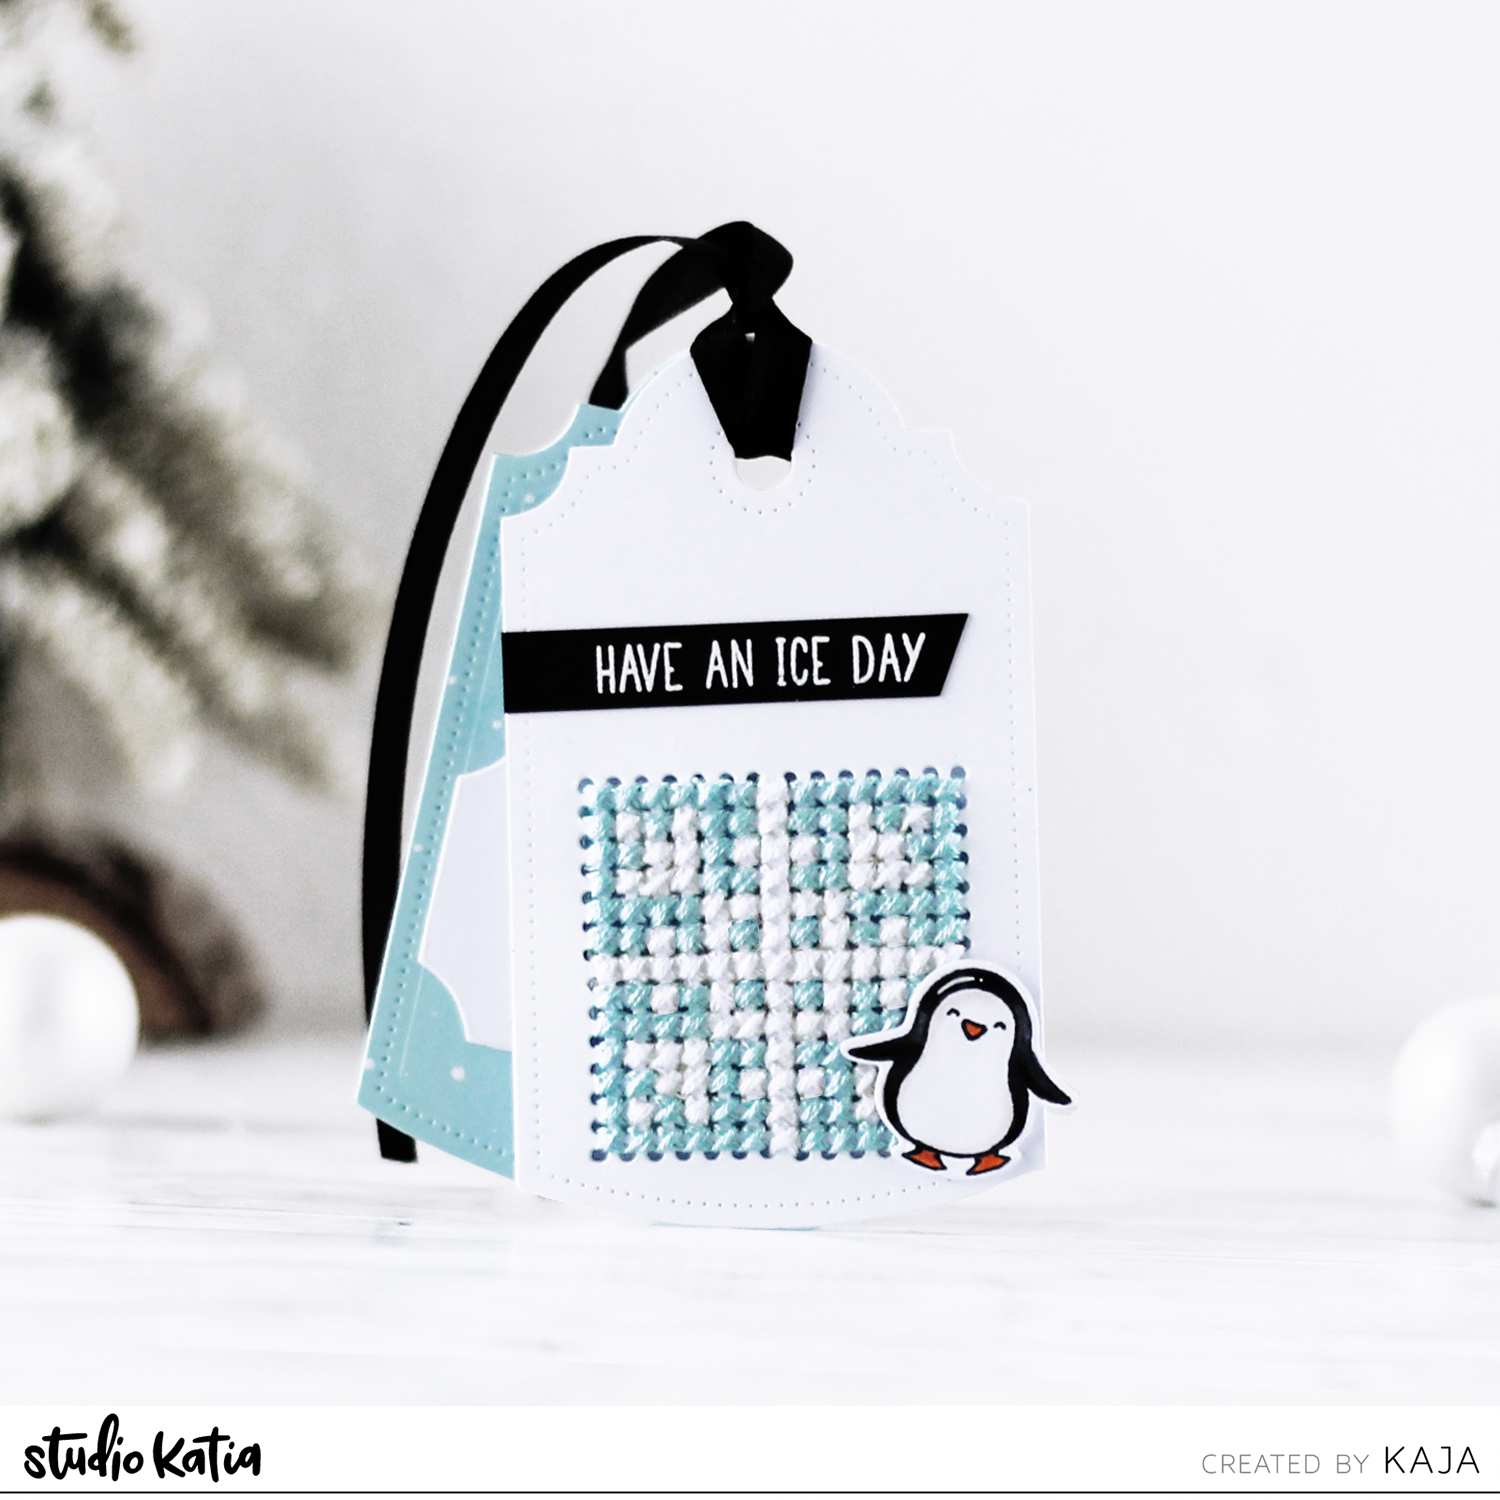 25 days of Christmas tags with Studio Katia